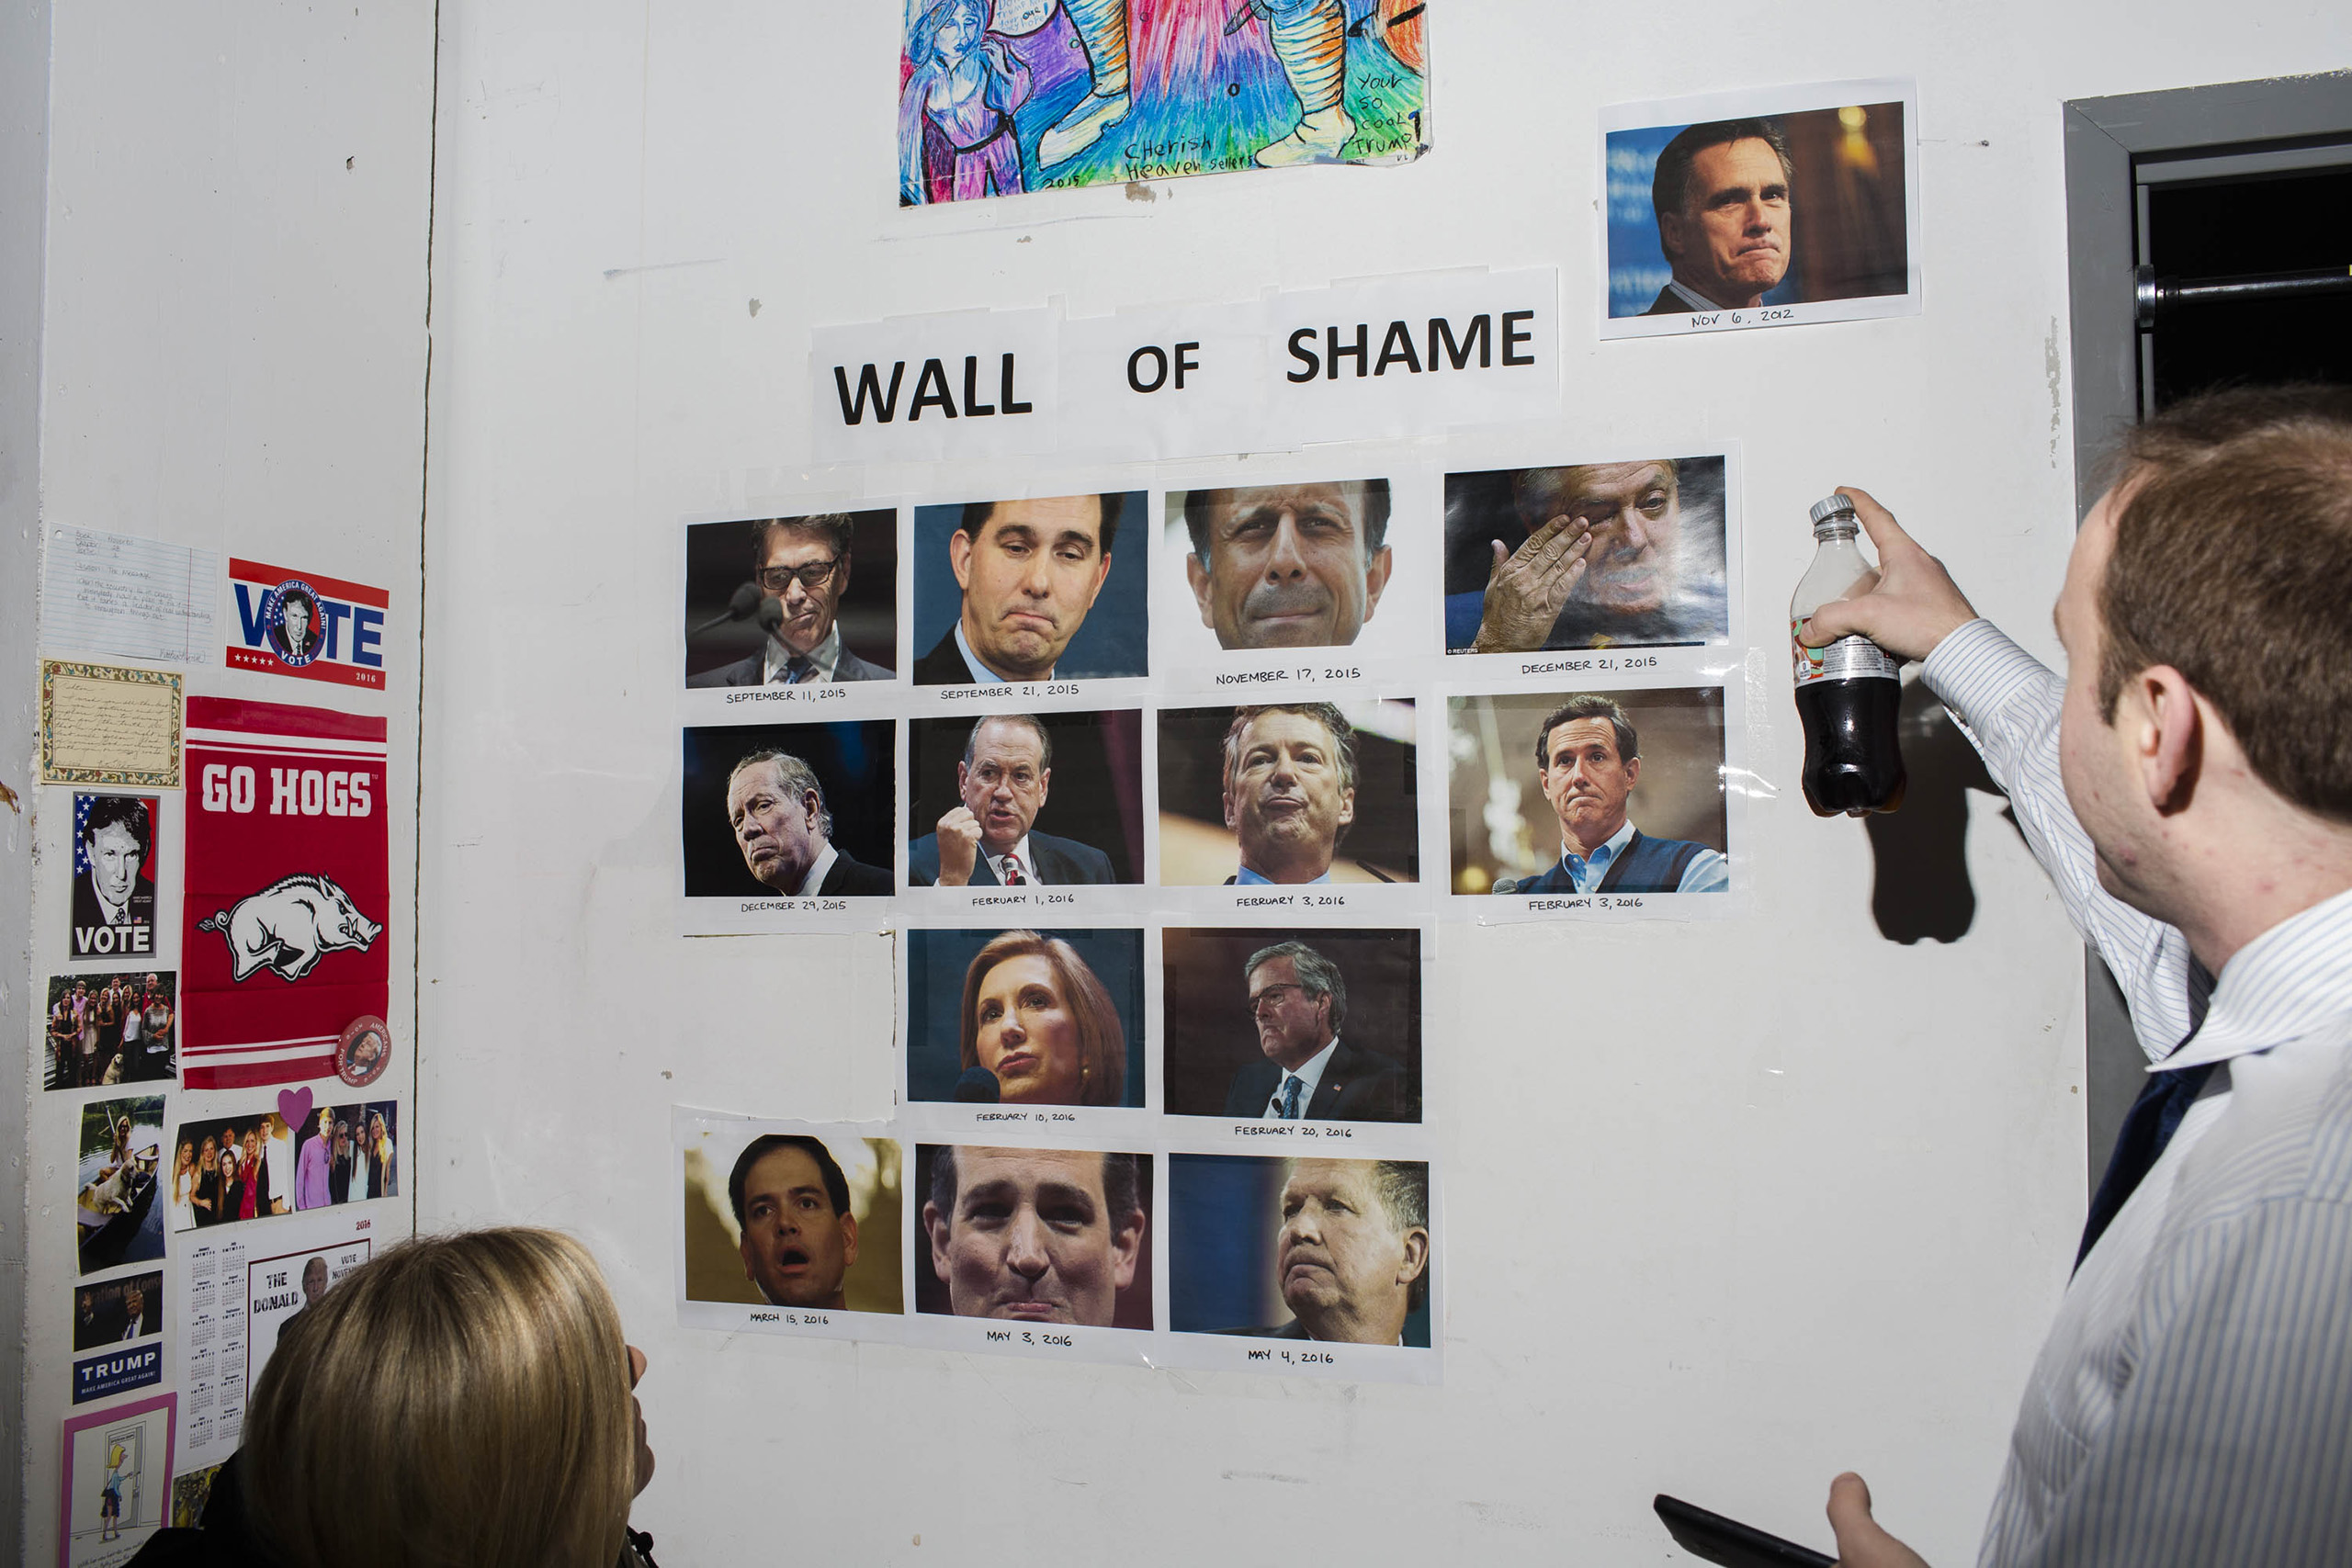 The wall of shame featuring Republican leaders who have criticized Trump, like former presidential candidate Mitt Romney inside the campaign headquarters of Donald Trump in New York City, on May 24, 2016.